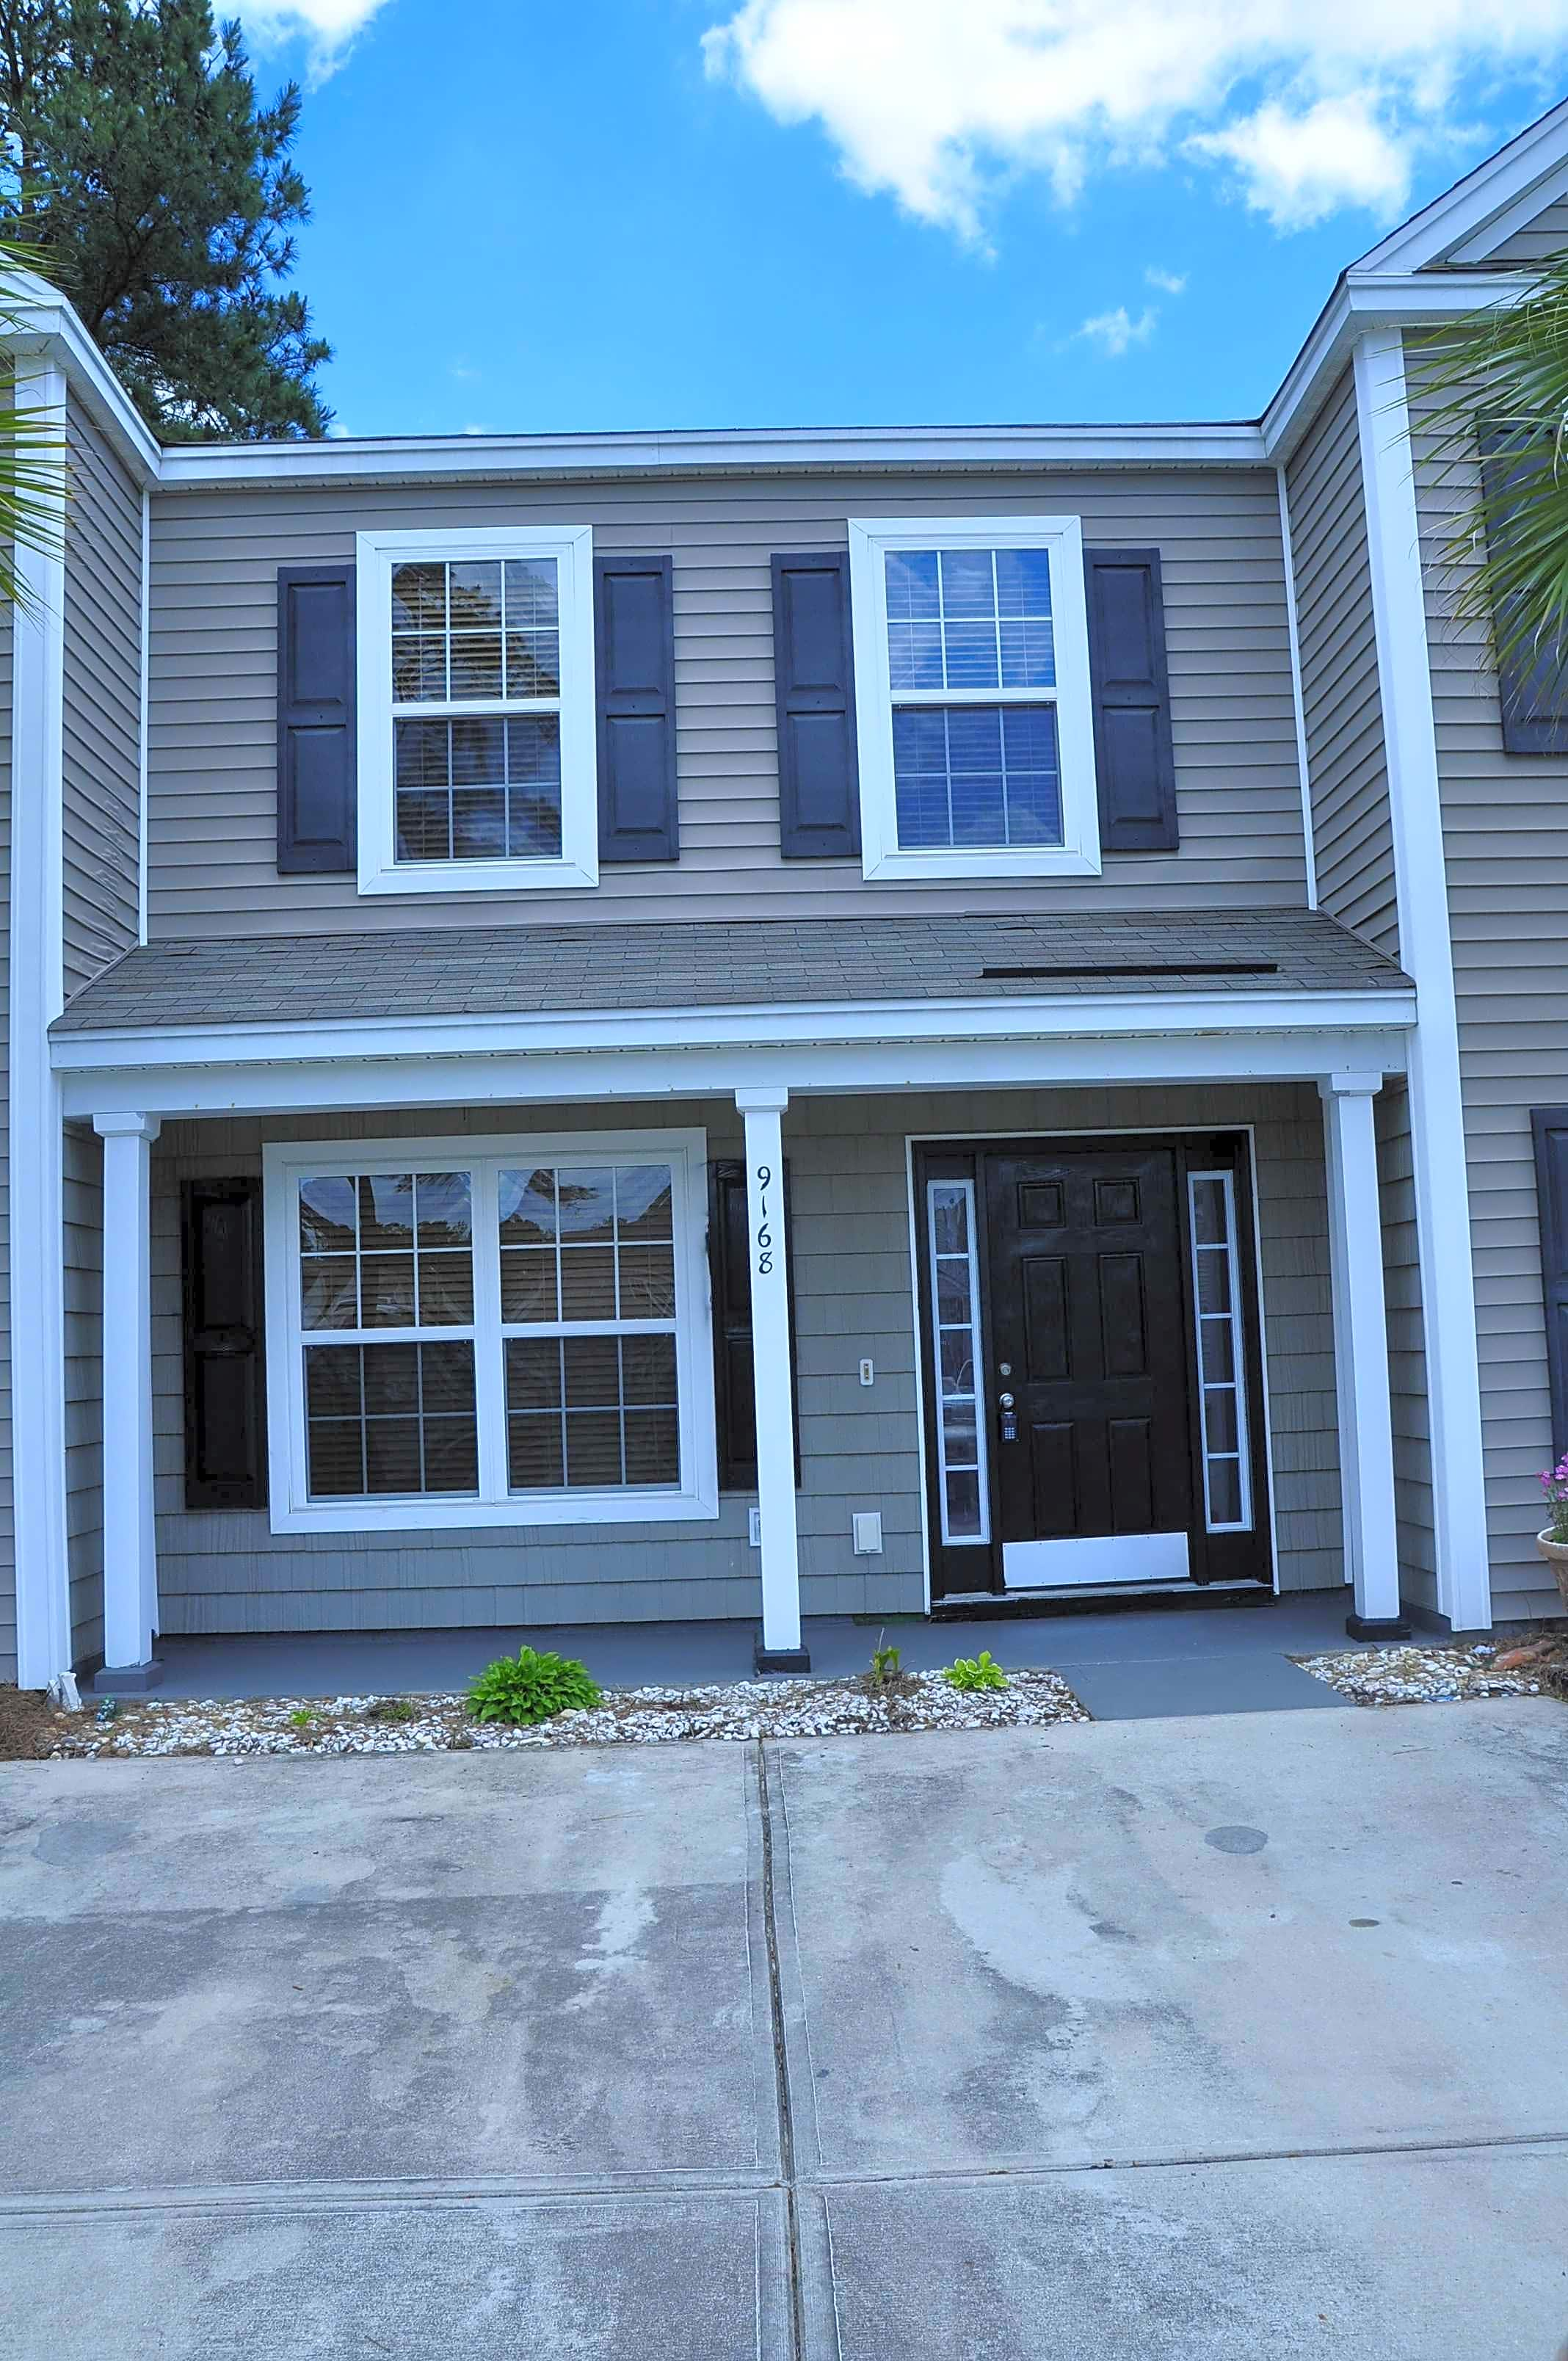 Summerville houses for rent apartments in summerville 2 bedroom apartments in summerville sc